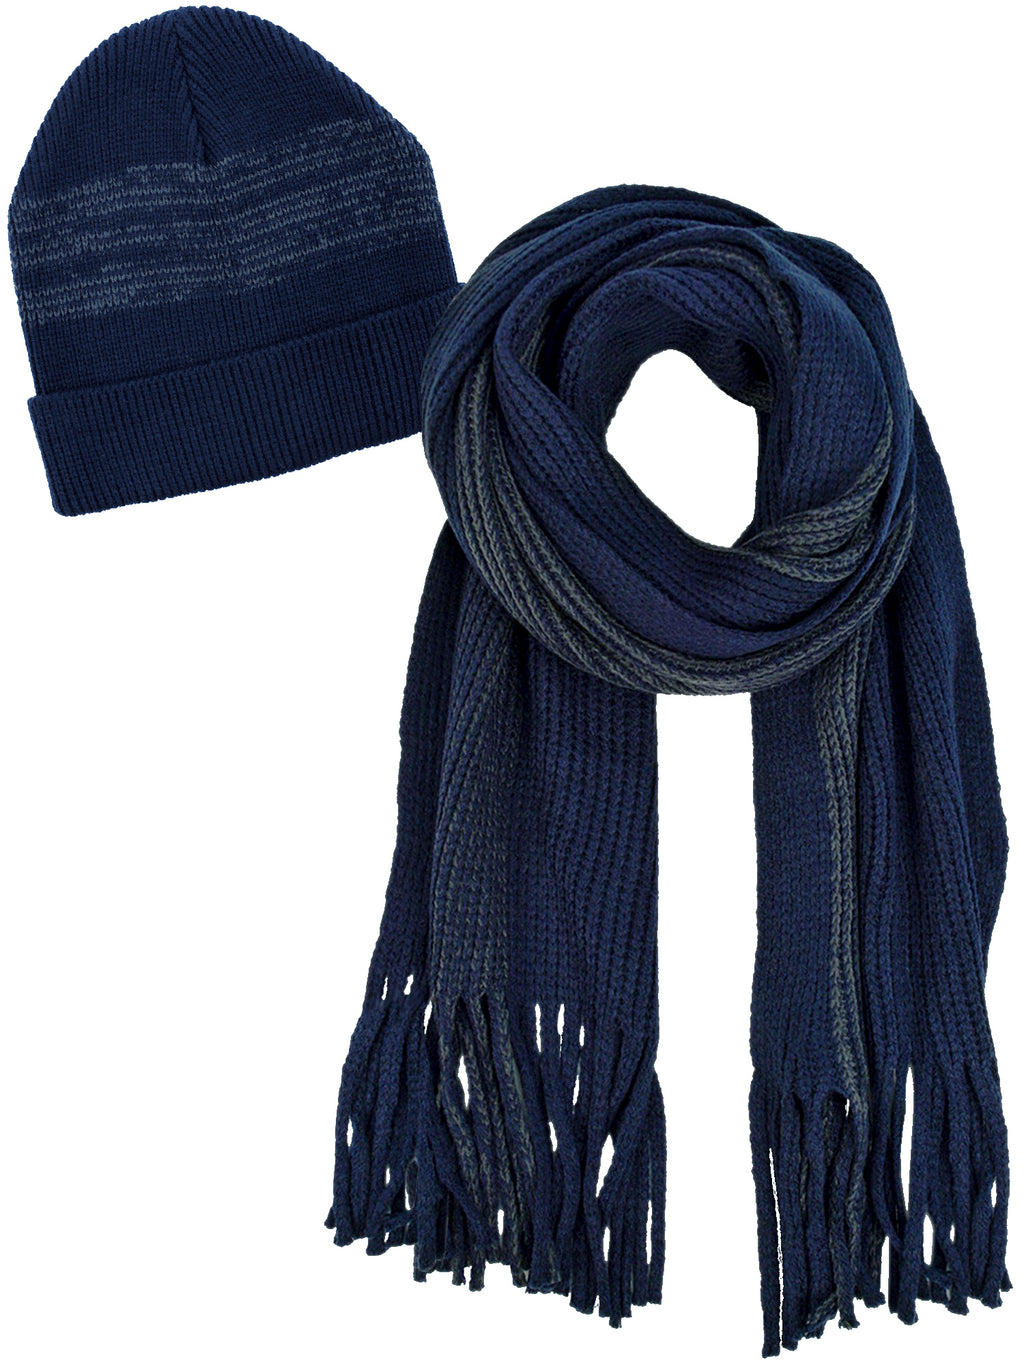 Navy Blue And Gray Knit Hat And Scarf Set